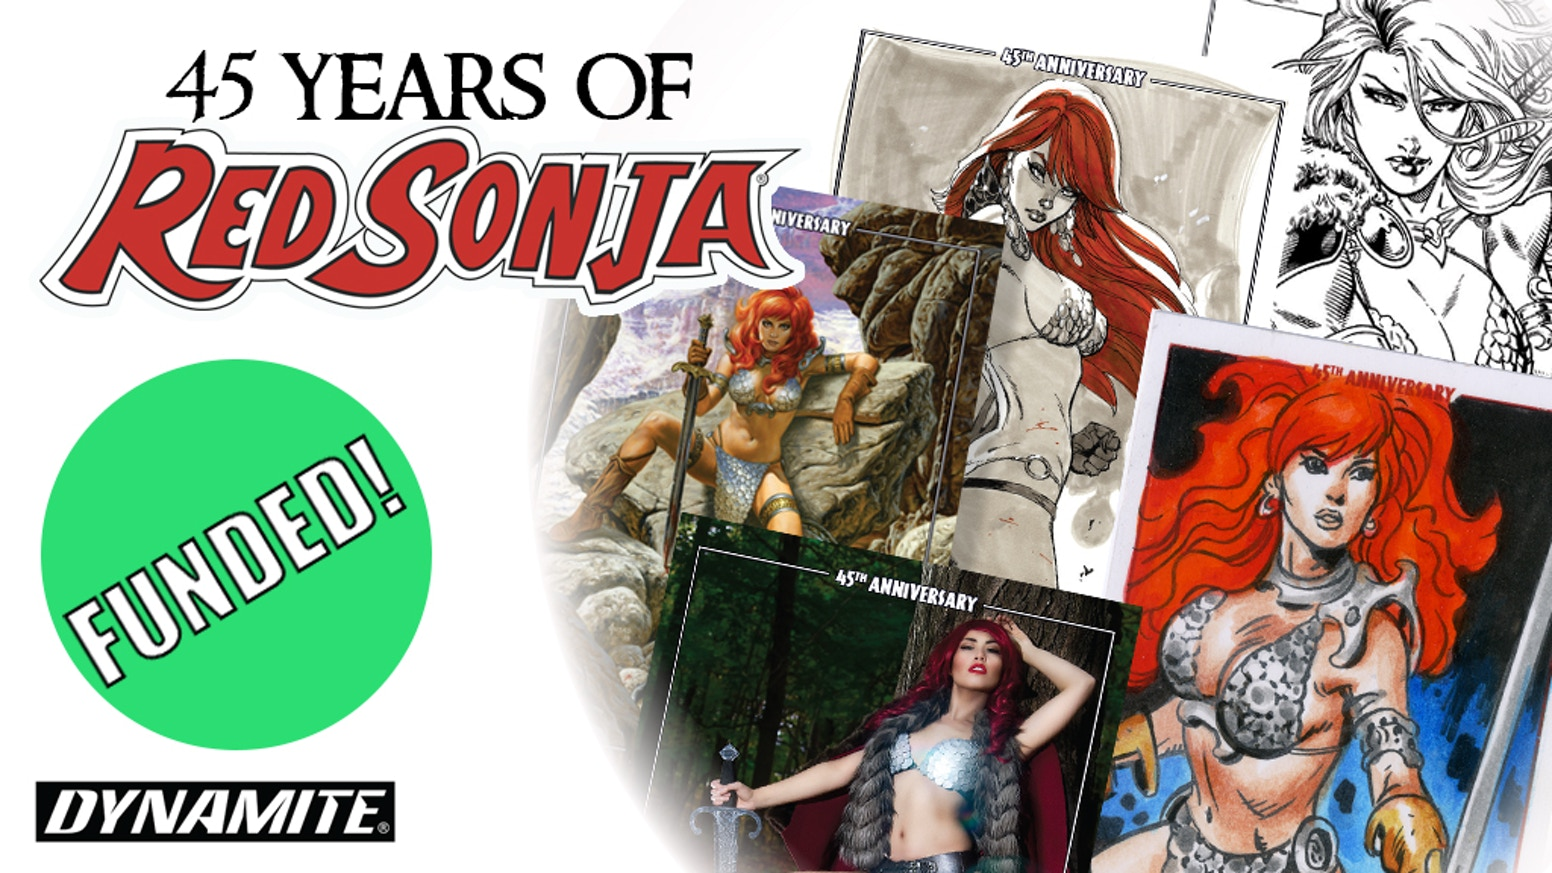 Celebrating Red Sonja's 45th anniversary with an ultra-premium set of trading cards focused on the collector.